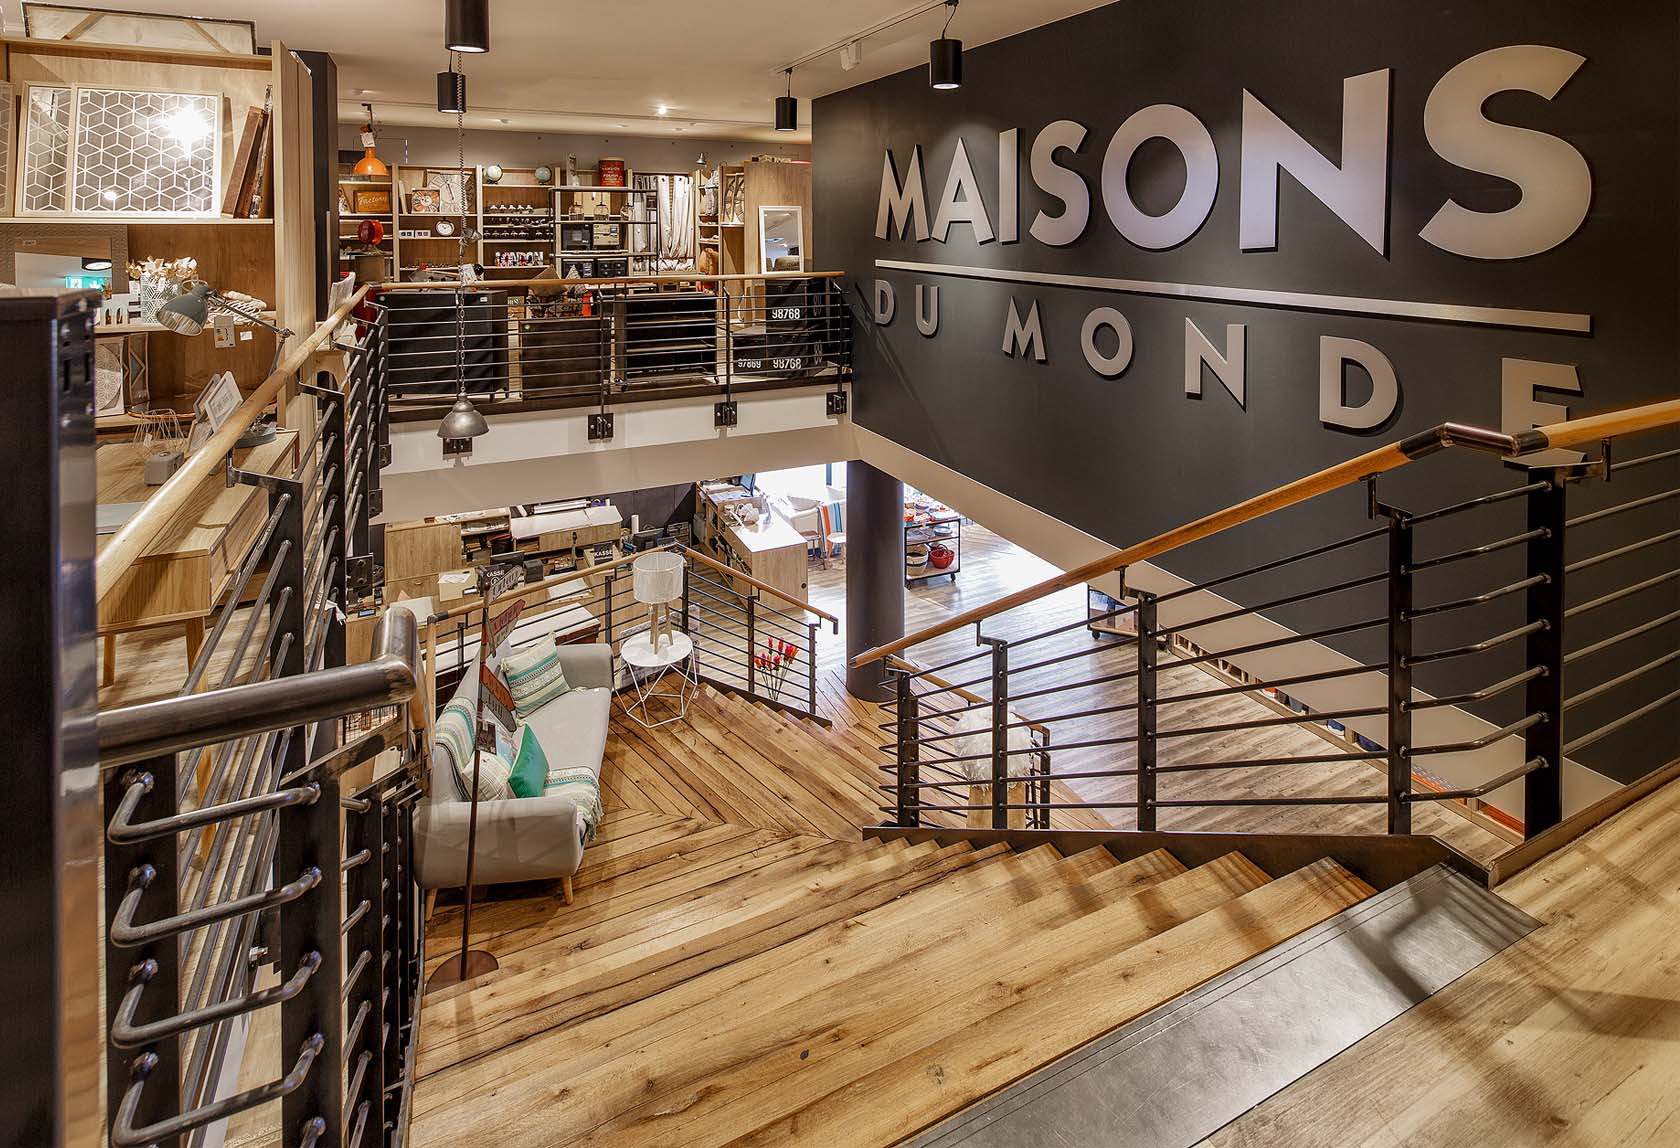 Maisons du monde store in dortmund germany sam l mau architecture - Boutique maison du monde ...